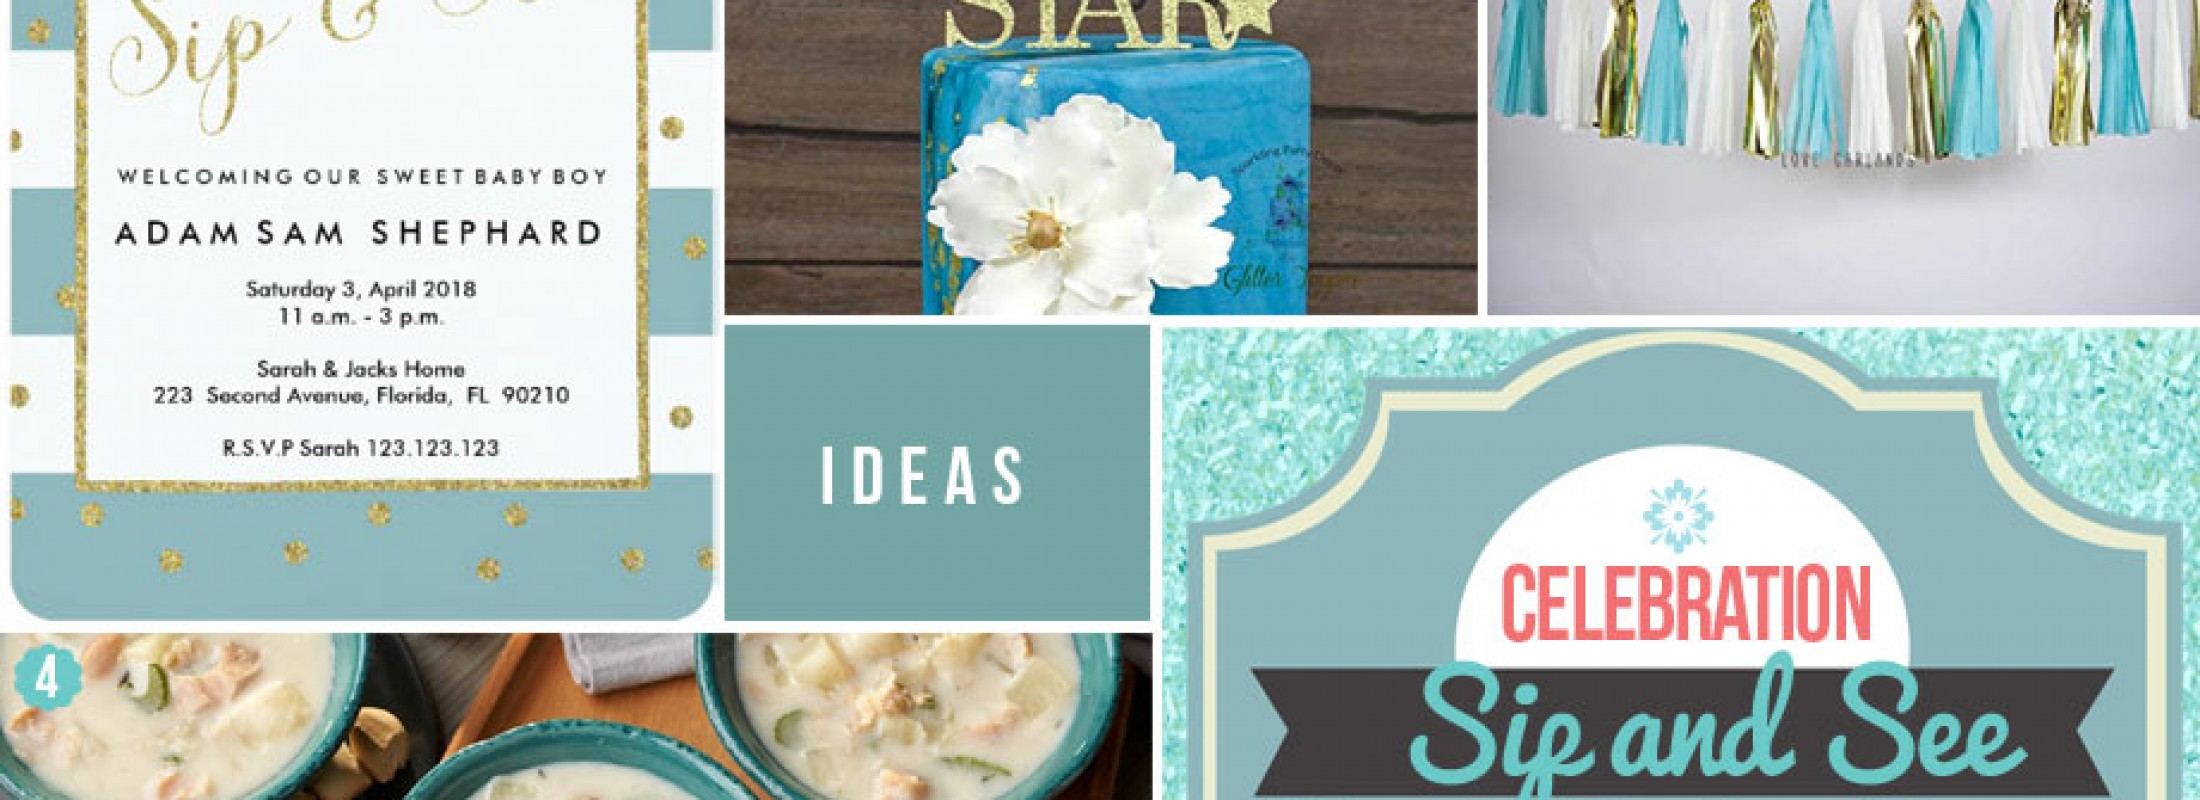 Welcome Baby Boy Party Ideas